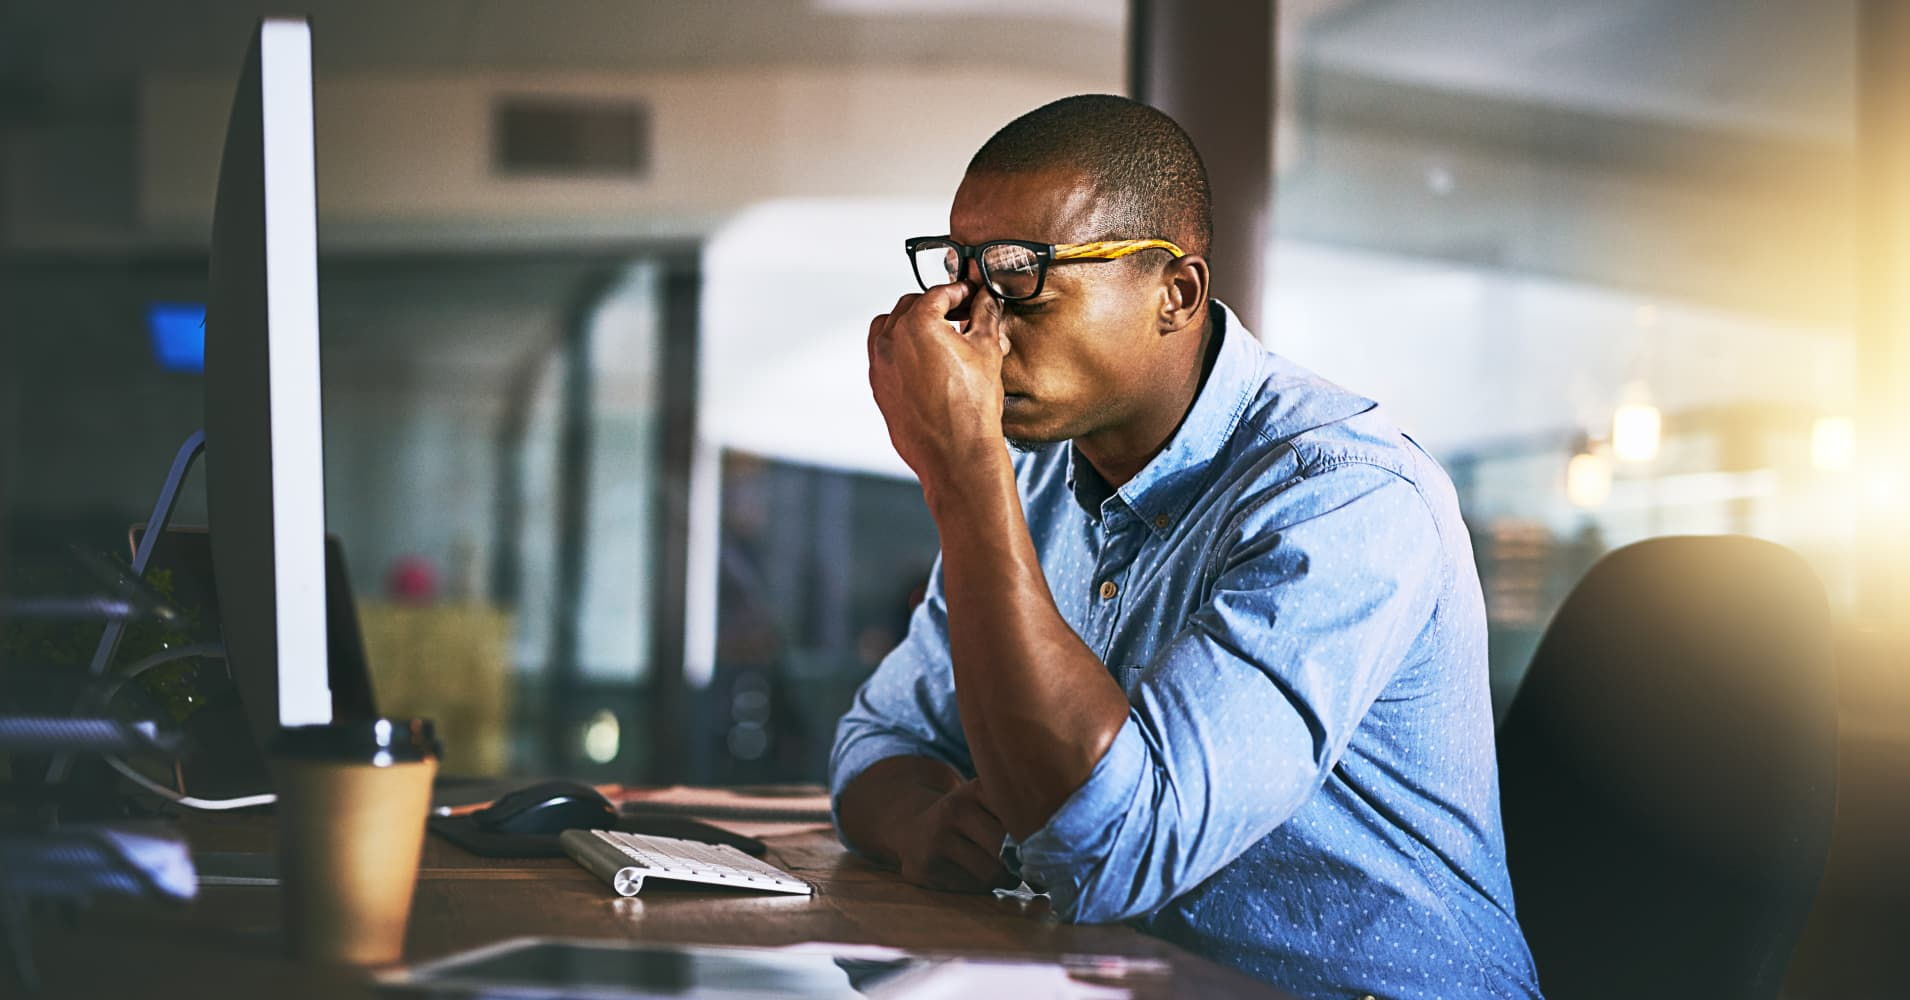 Feeling stressed at work? Try learning something new